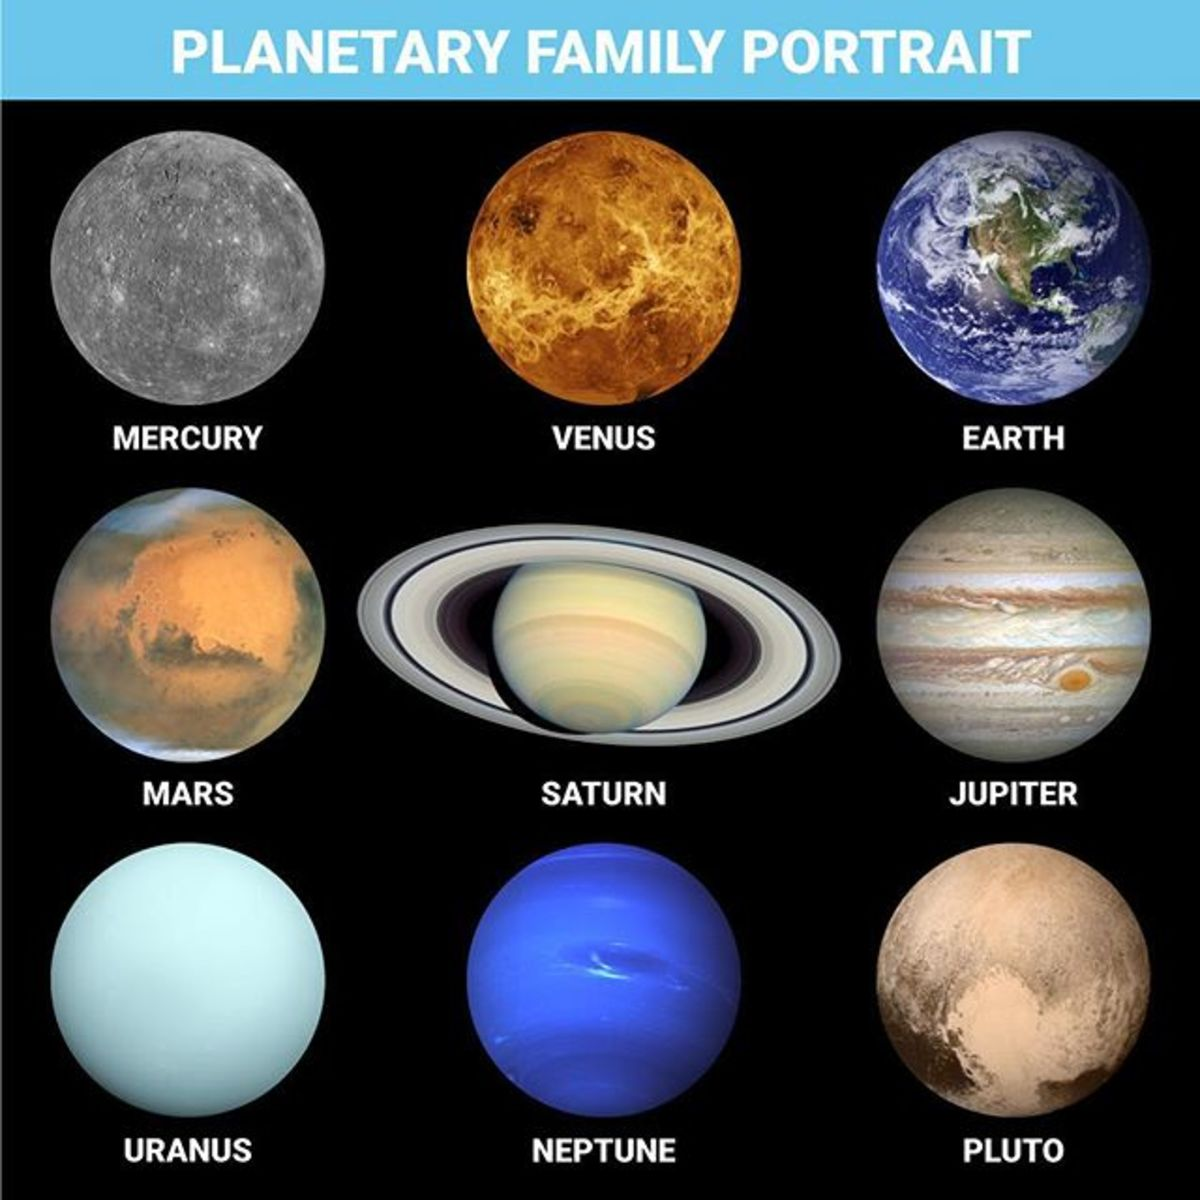 True-Color Photos of All the Planets